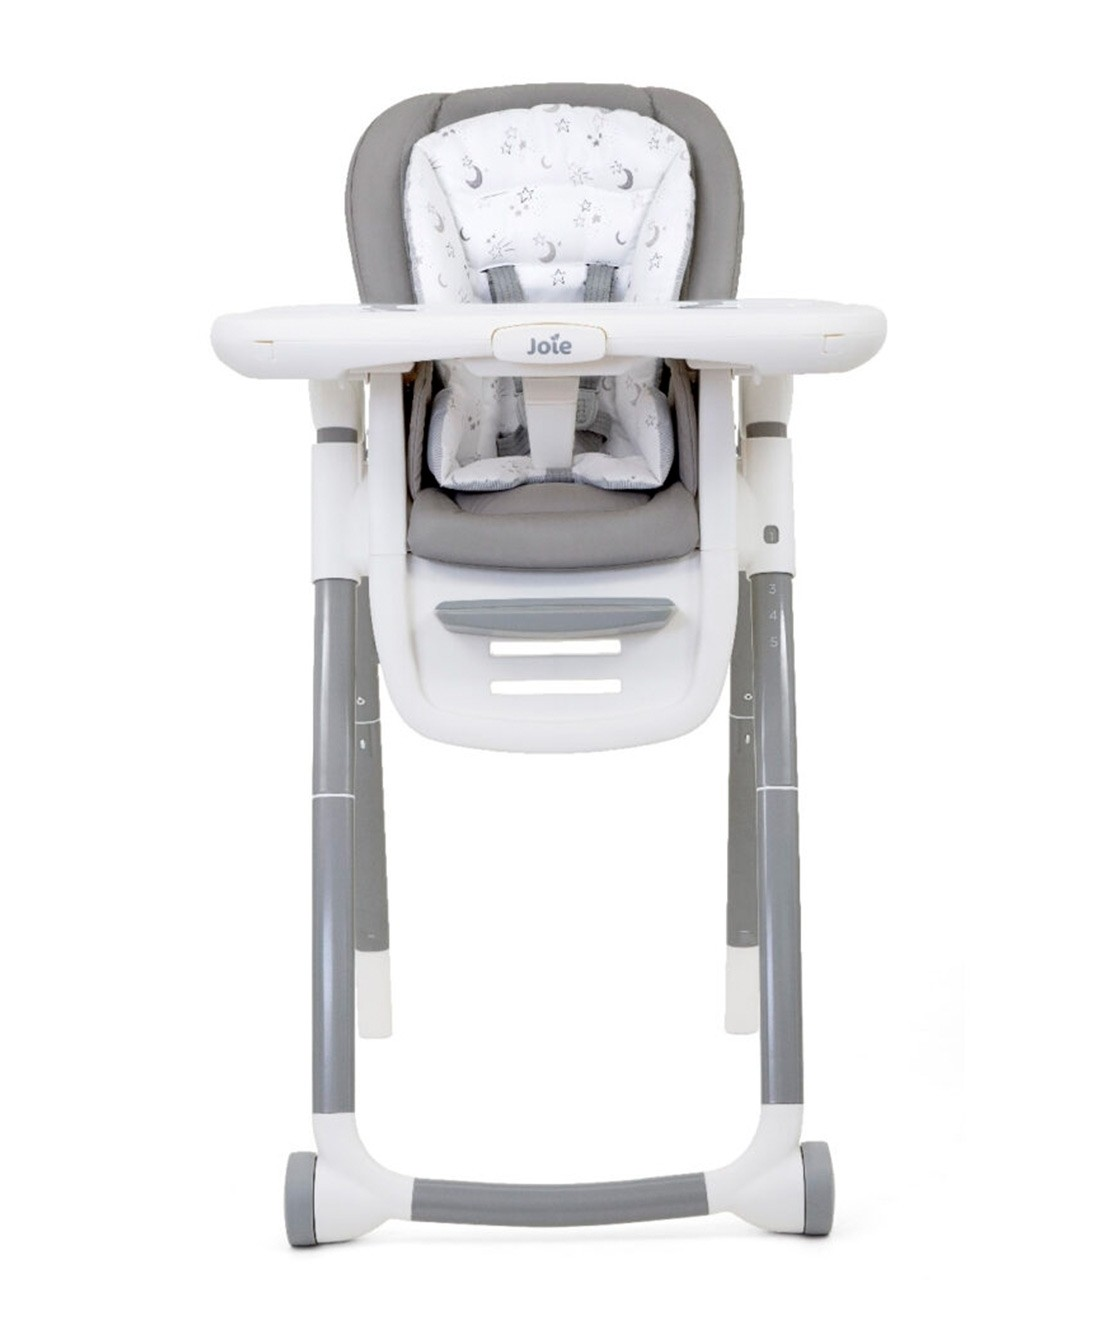 Joie Multiply 6 In 1 Highchair - Starry Night